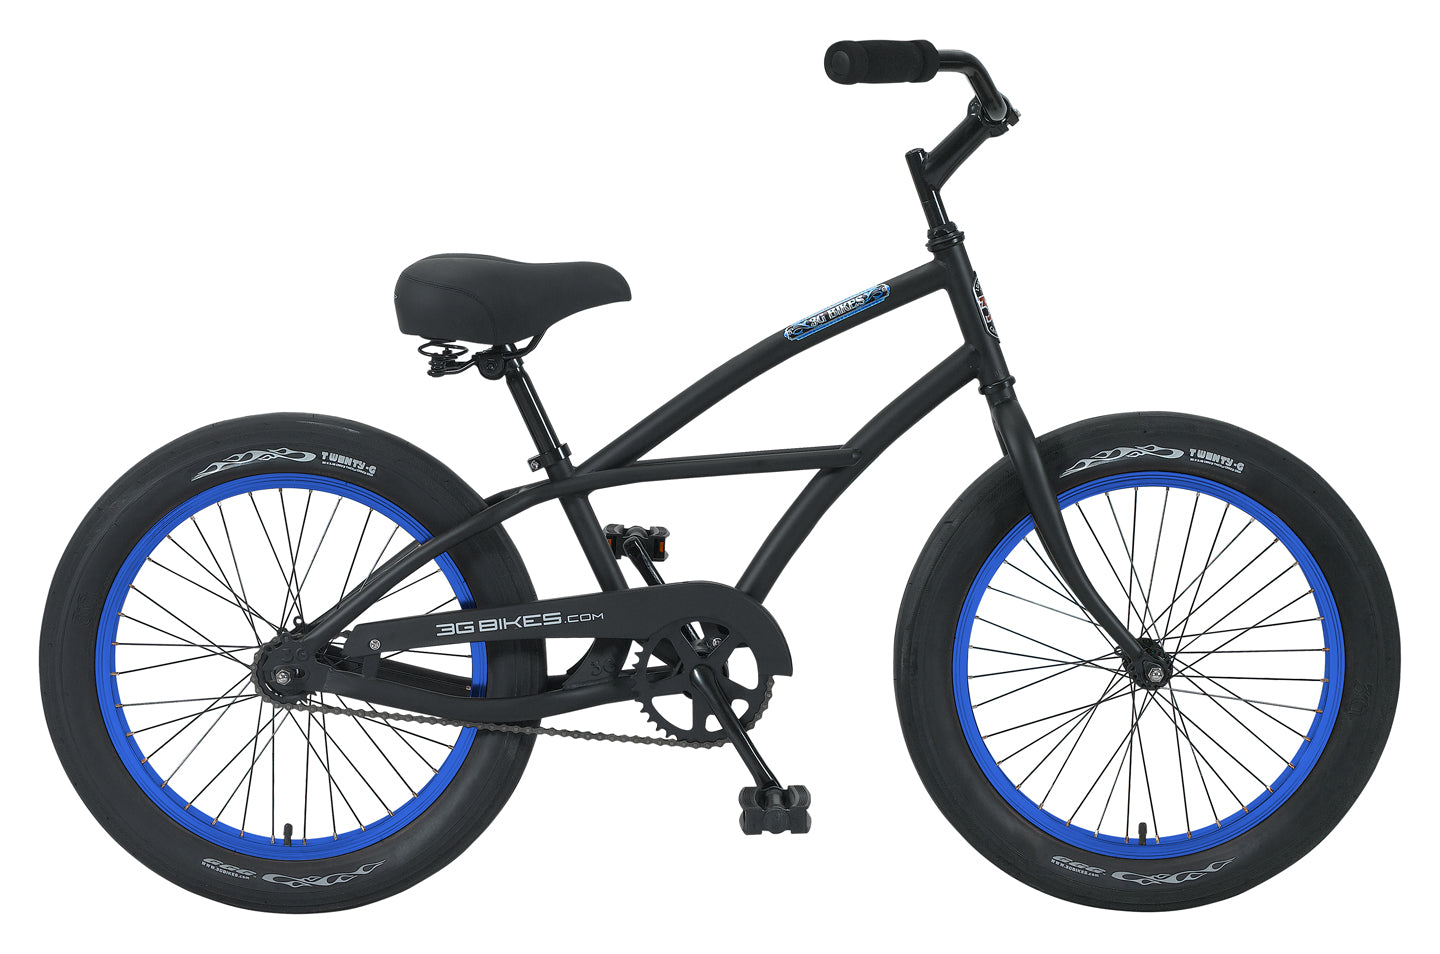 "3G Axle 1 Speed Boys 20""Bike Matte Black with Blue Rims"